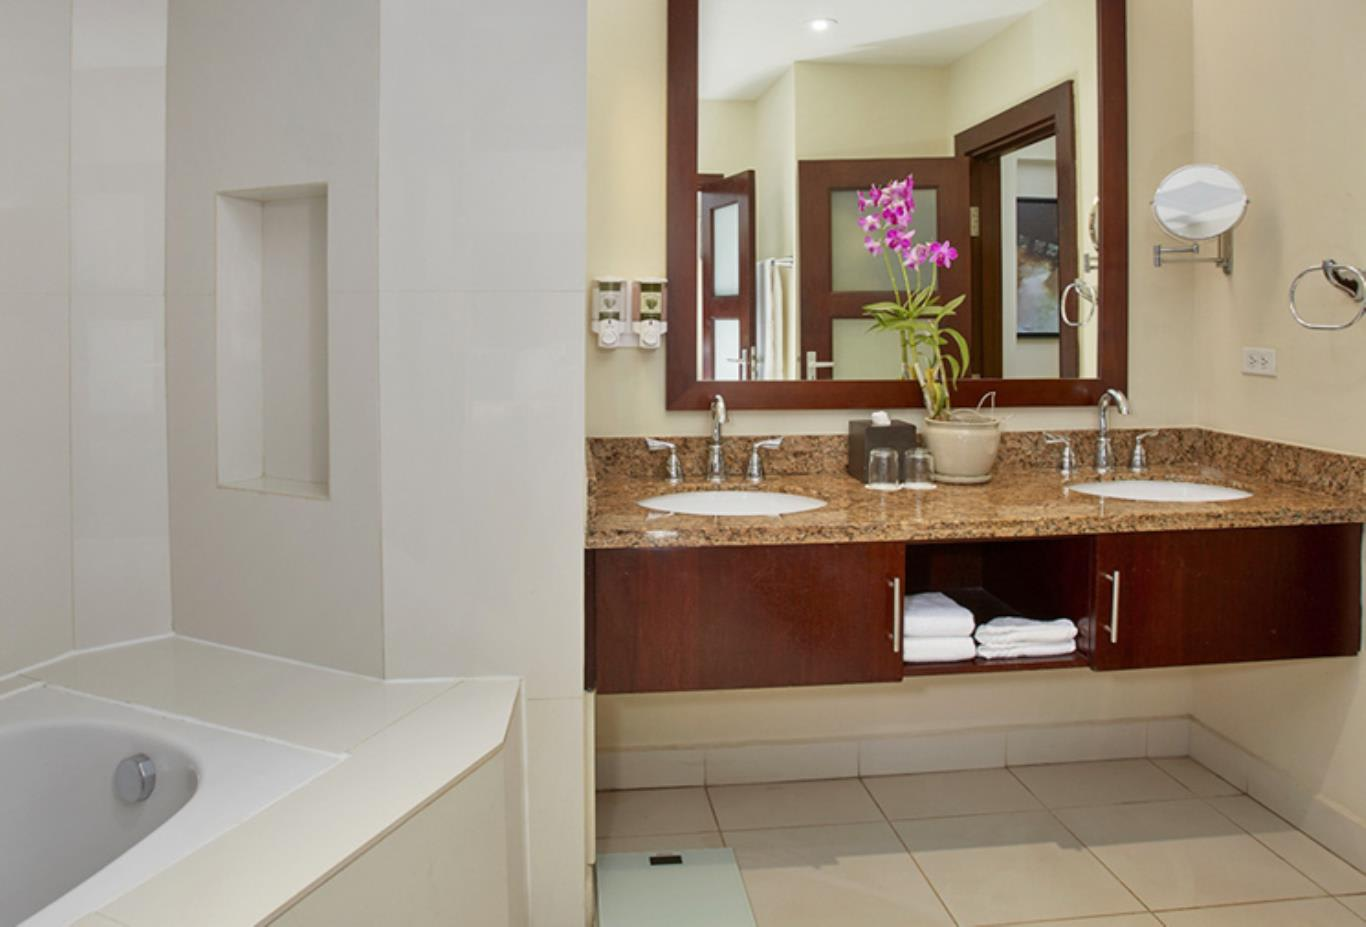 Bungalow Suite bathroom